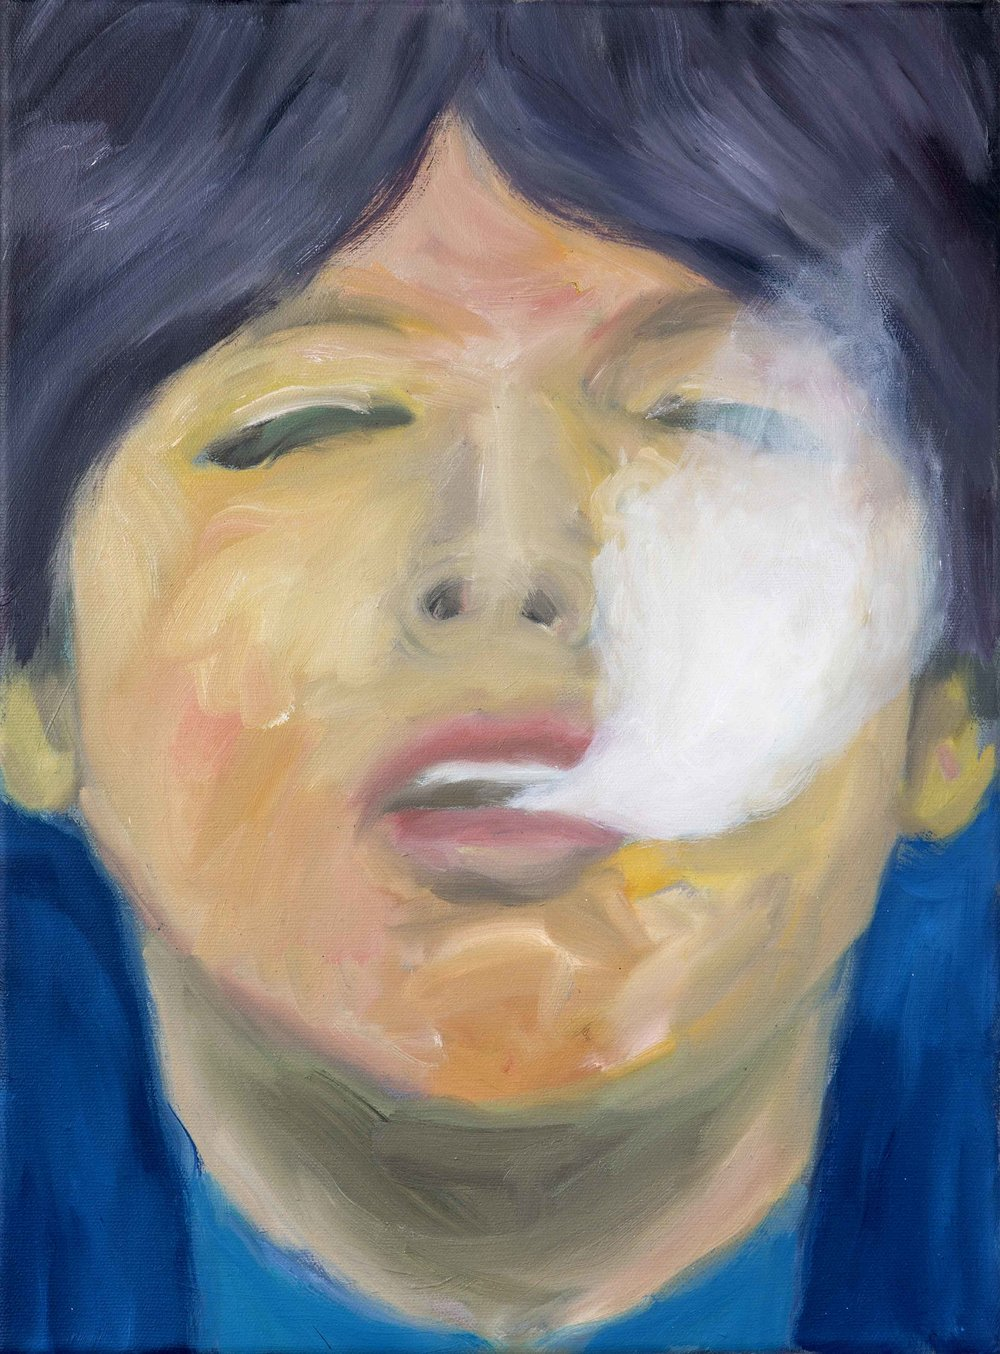 Smoke   2012  oil on canvas  30 x 40 cm